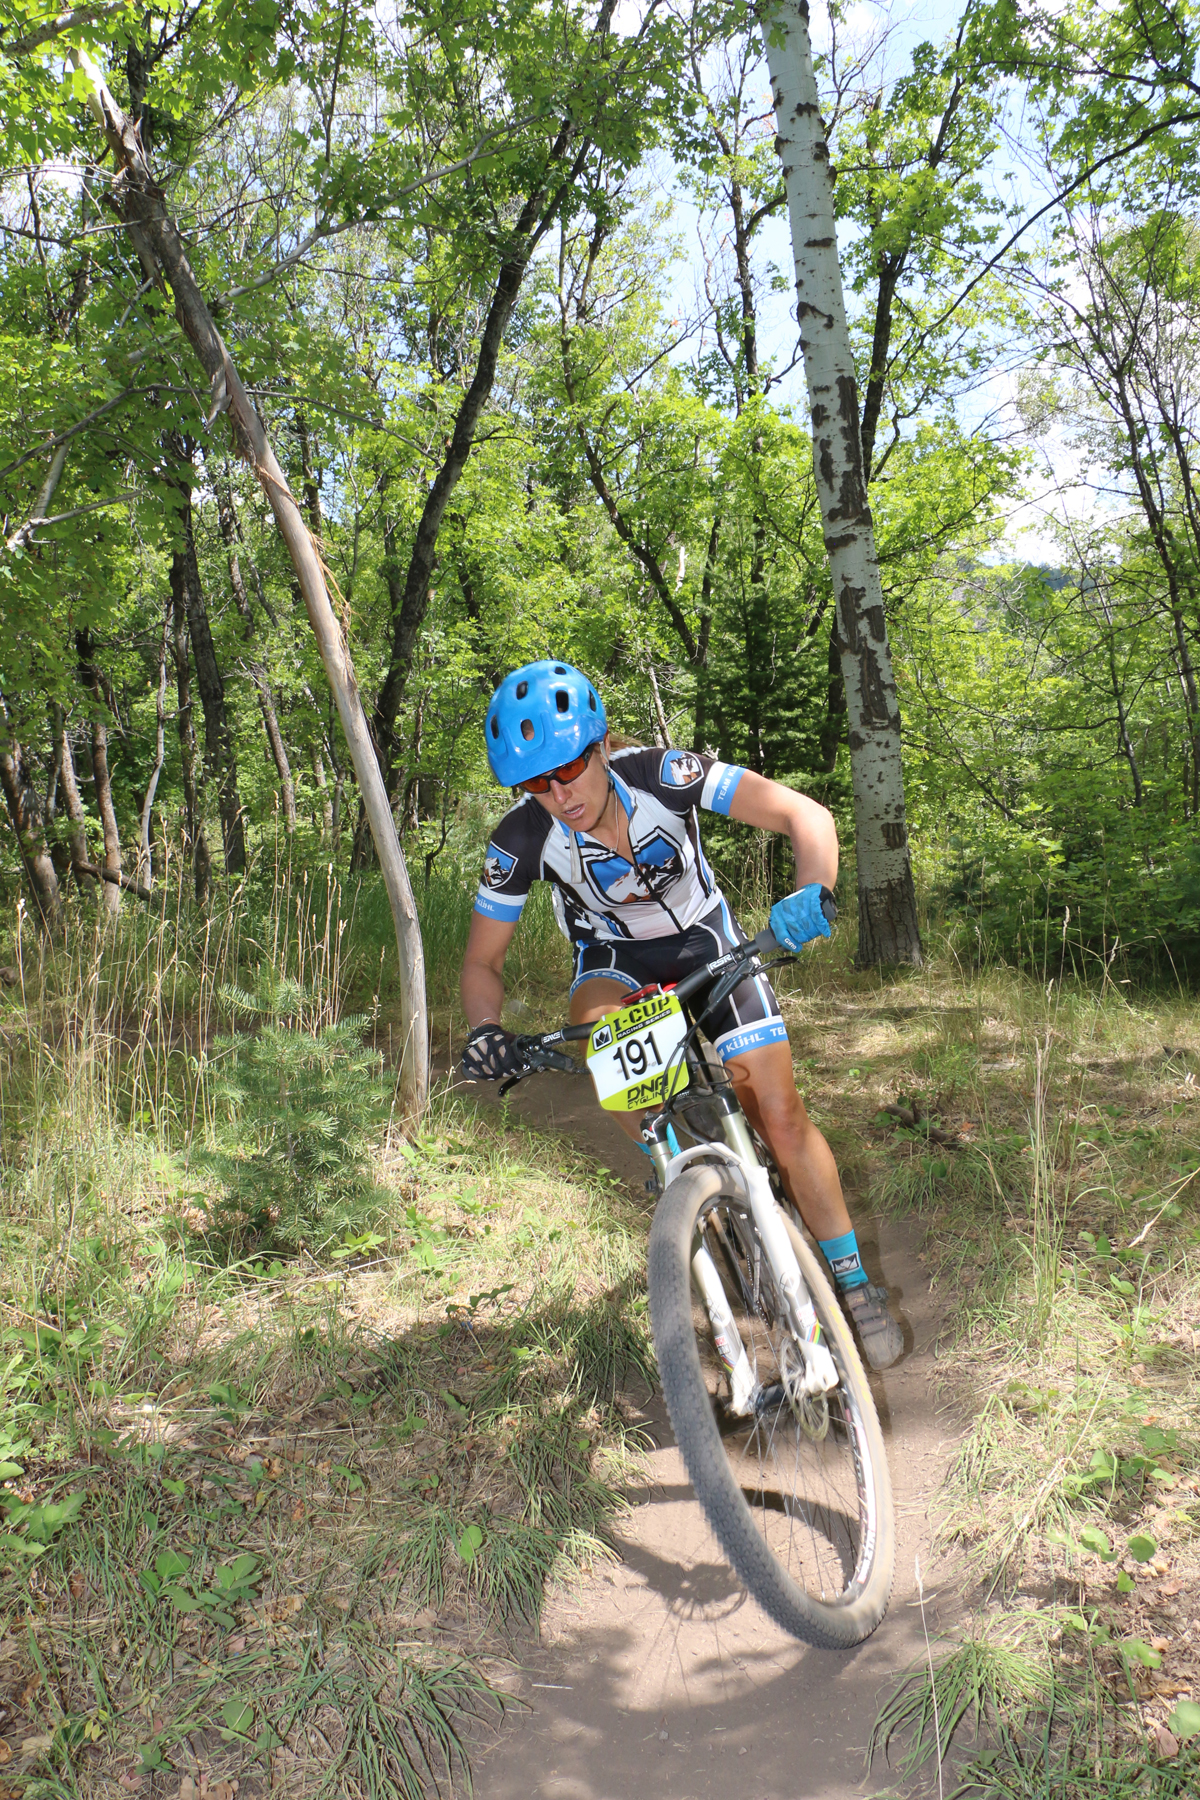 KC Holley (Kühl Cycling) won both the XC and Endurance XC series in the 2016 Intermountain Cup. She is shown here on her way to second place in the Sundance Intermountain Cup on August 13, 2016. Photo by Dave Iltis